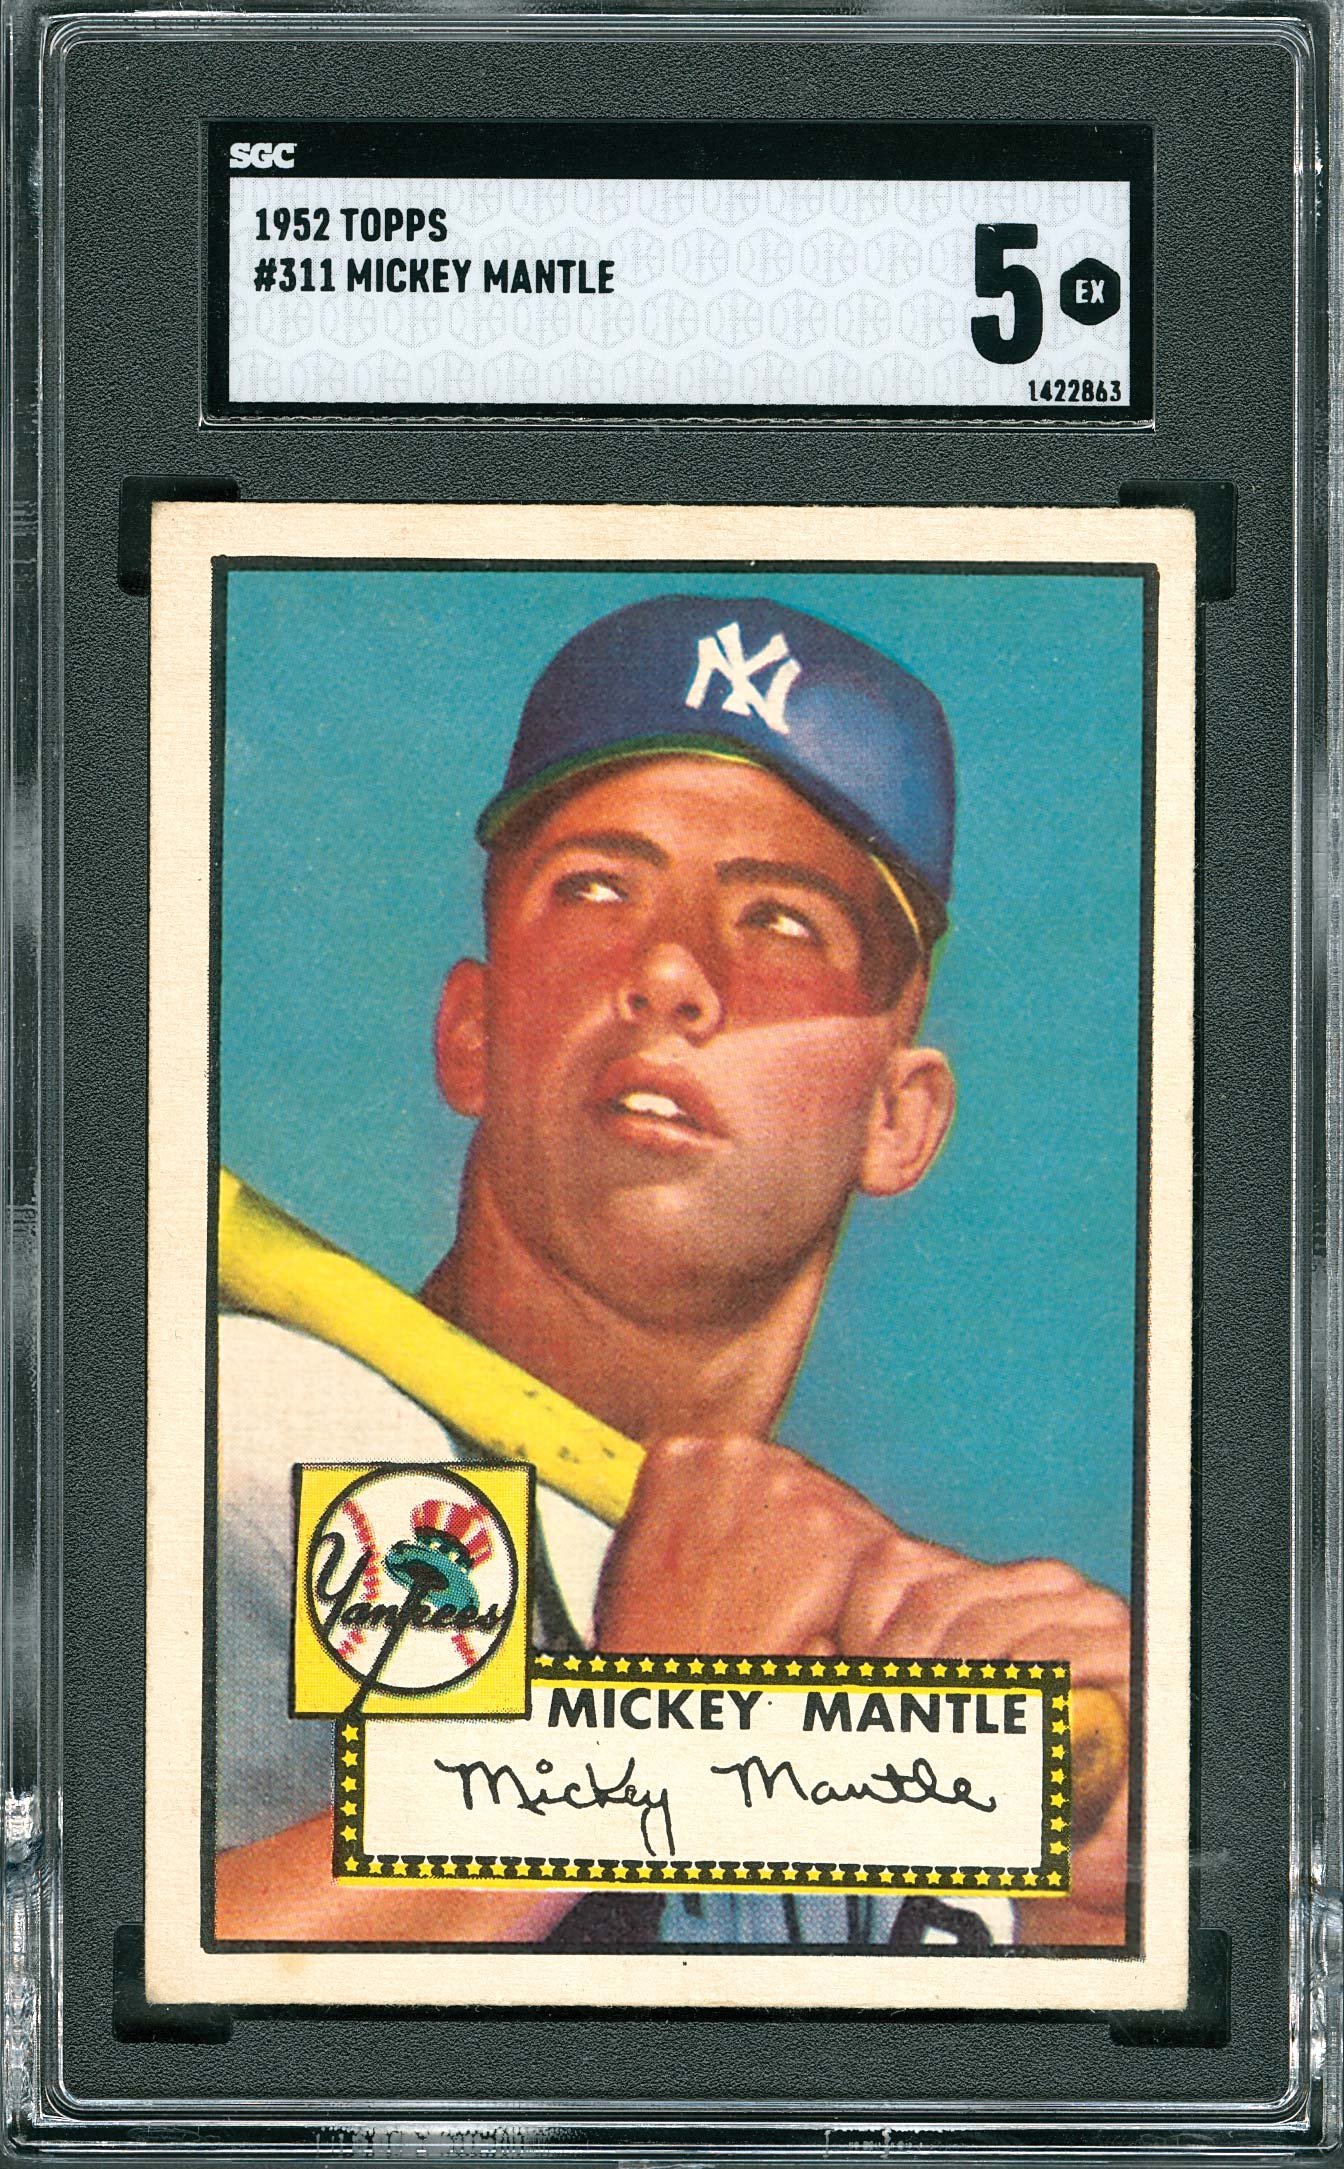 1952 Topps Mickey Mantle baseball card (graded by SGC EX 5), $106,920.